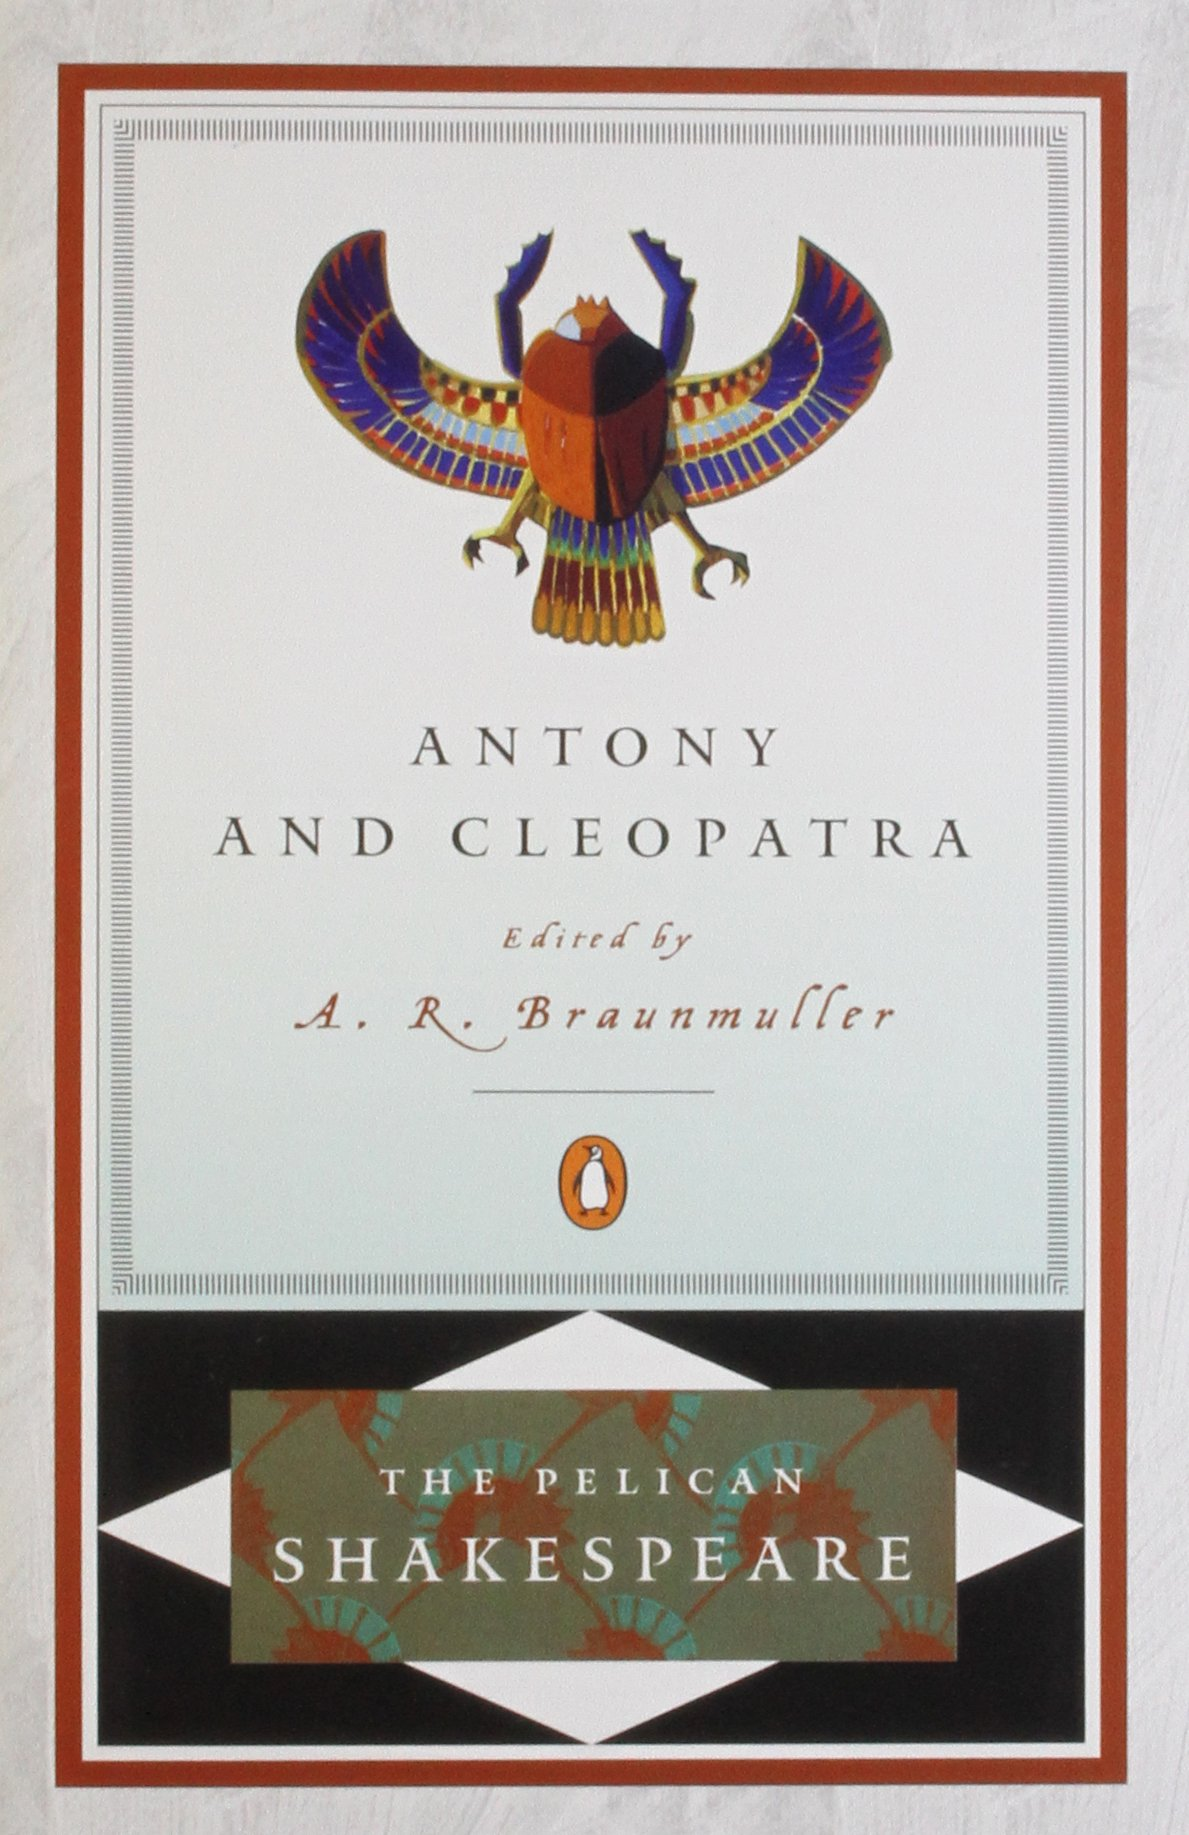 com antony and cleopatra the pelican shakespeare com antony and cleopatra the pelican shakespeare 9780140714524 william shakespeare a r braunmuller stephen orgel books